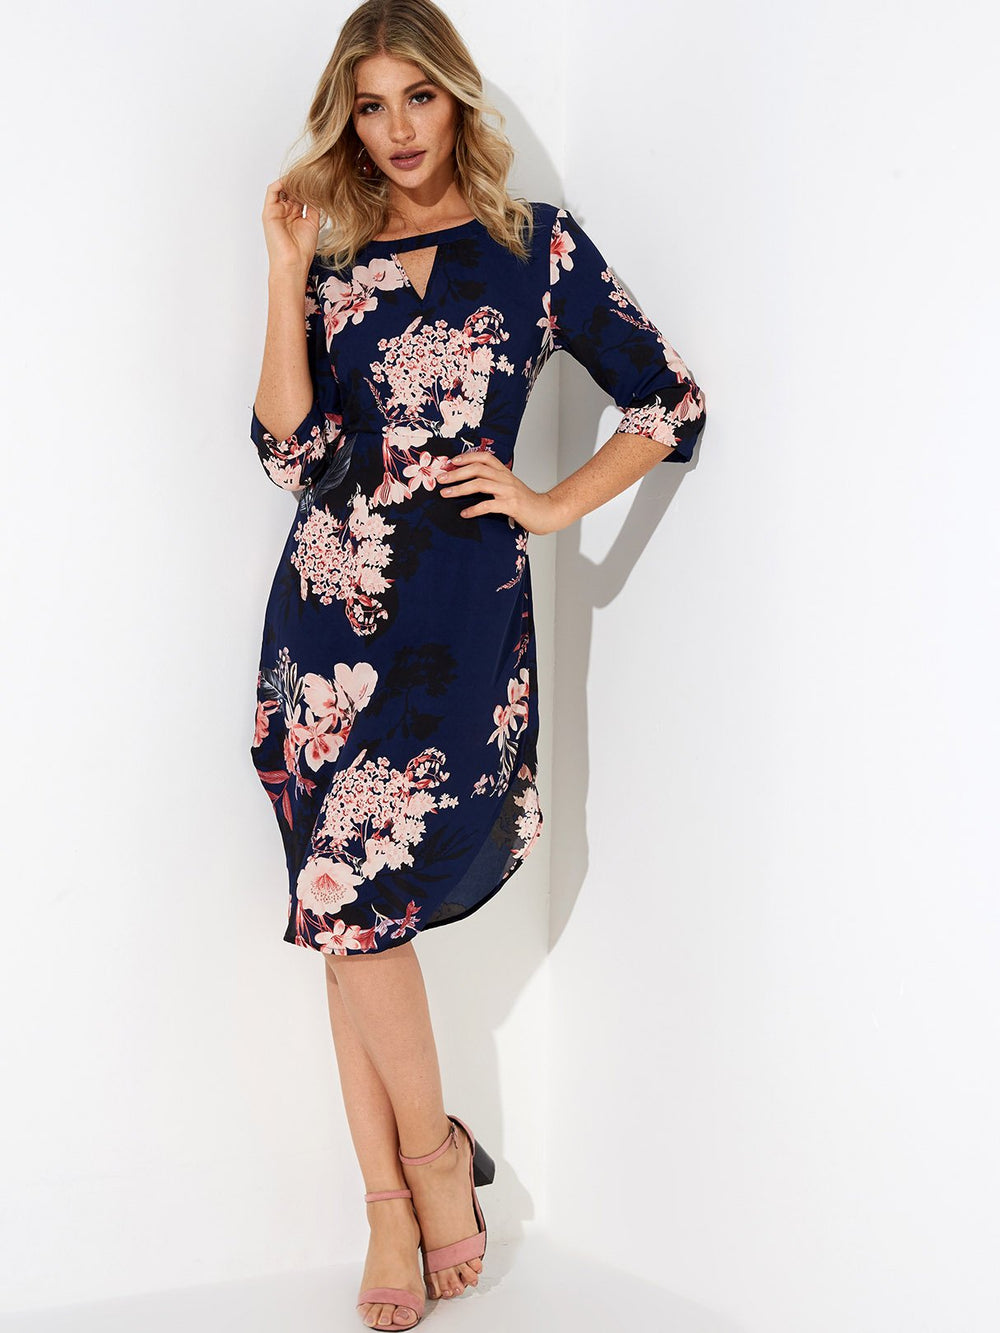 Ladies 3/4 Sleeve Dresses